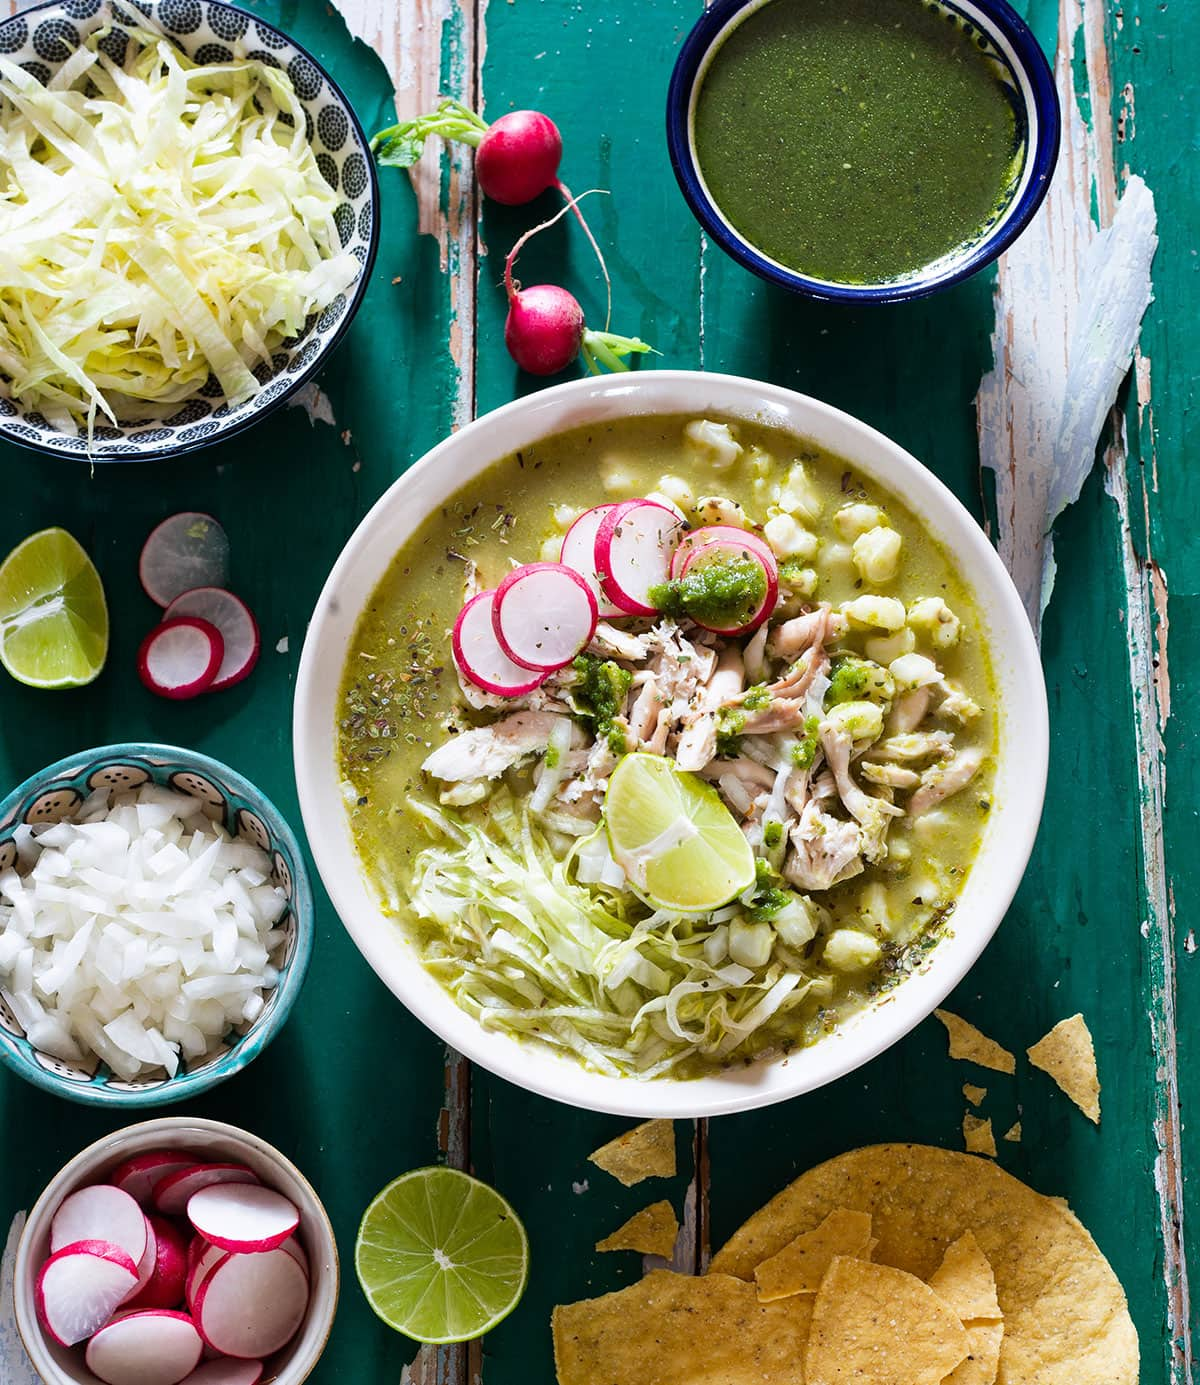 Chicken green pozole verde with various toppings.